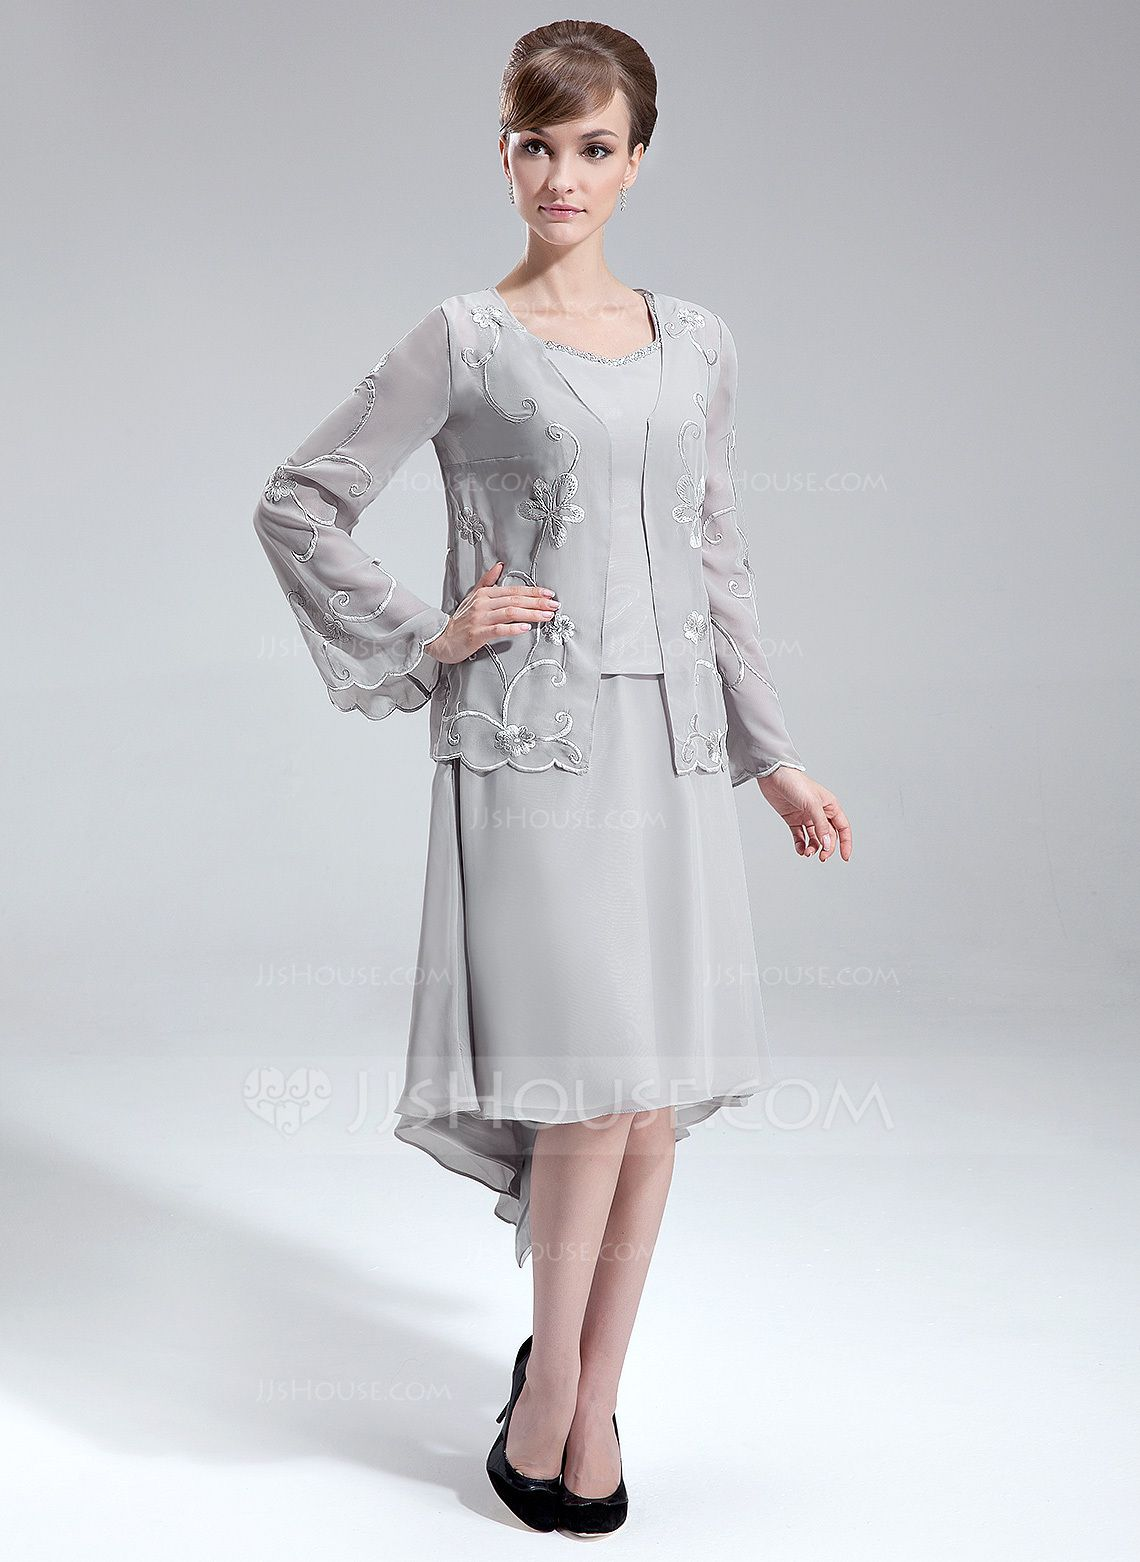 Mothers dresses for a wedding  JJsHouse as the global leading online retailer provides a large